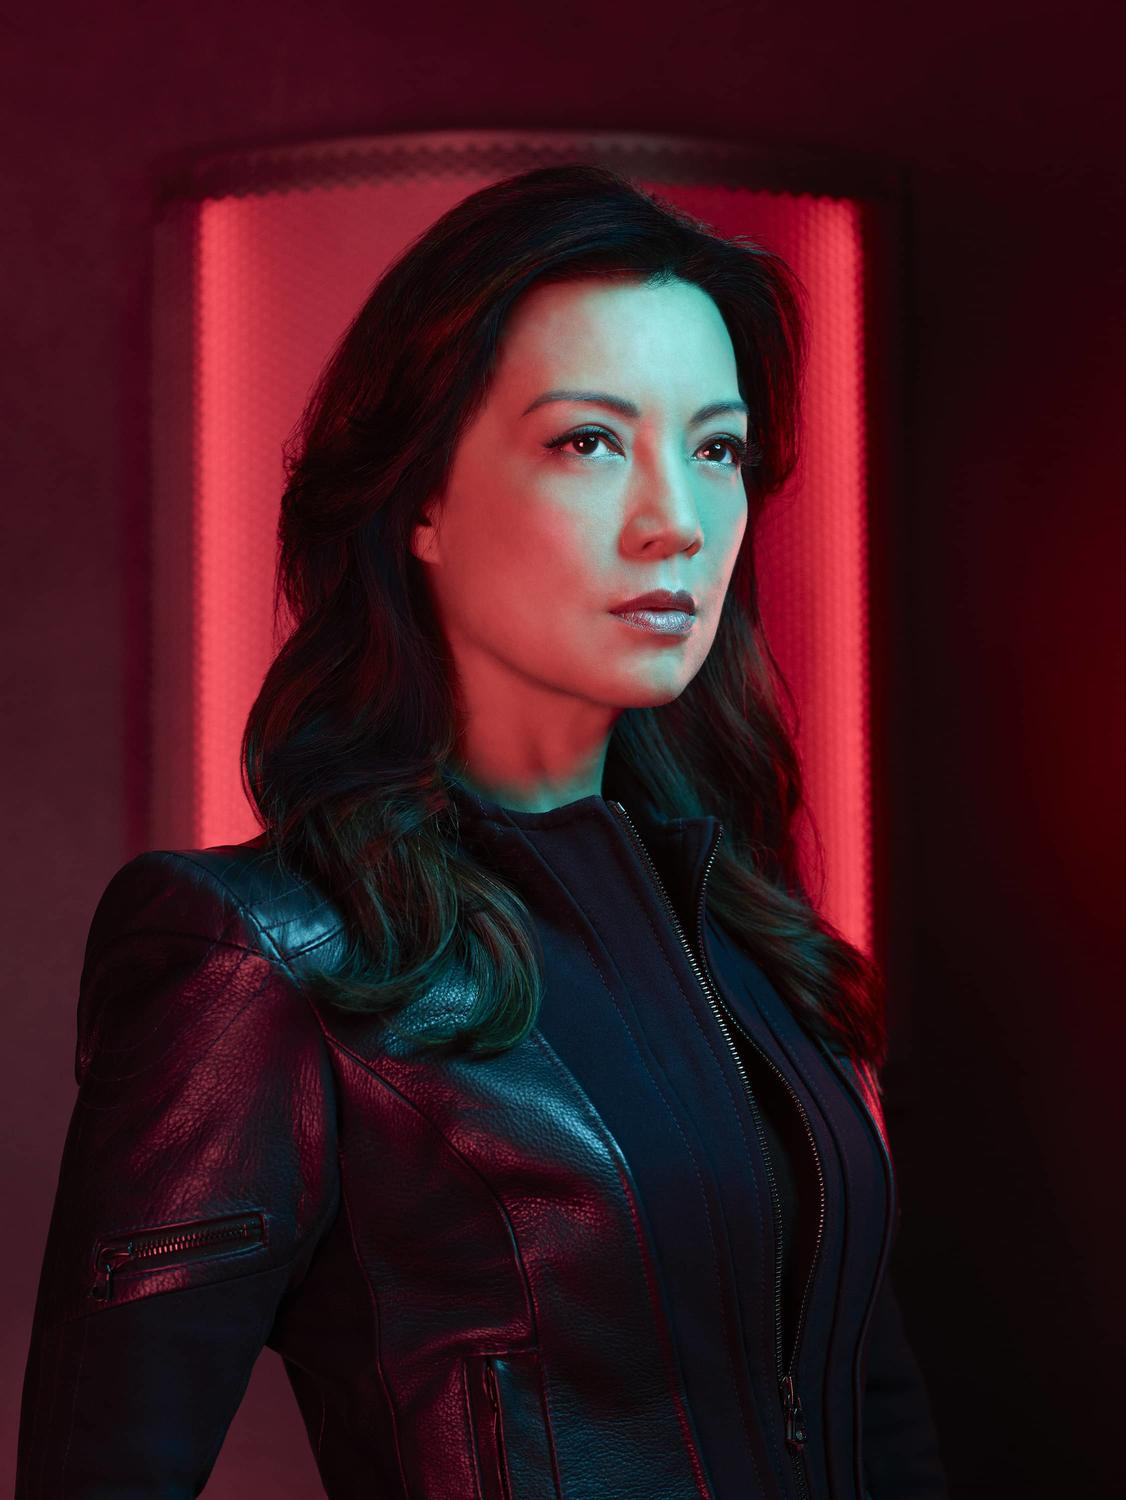 MING-NA WEN AS MELINDA MAY